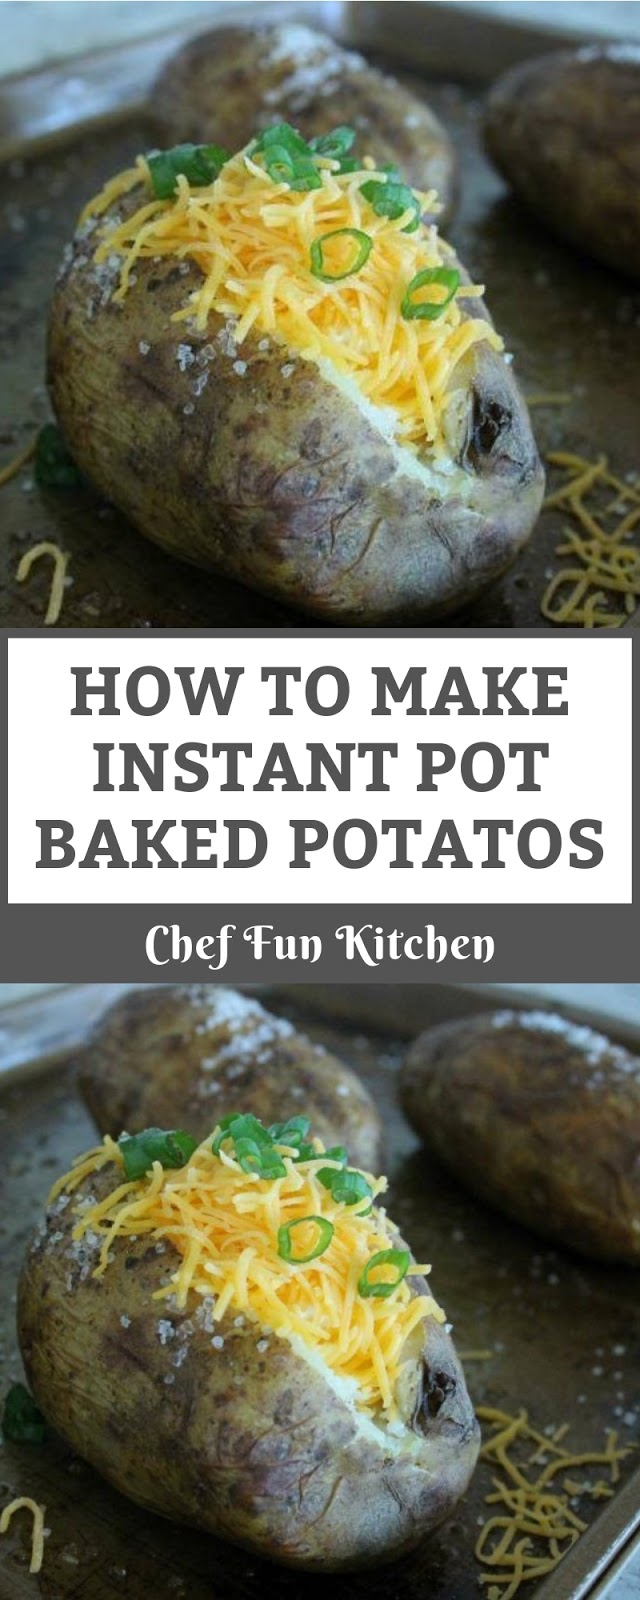 HOW TO MAKE INSTANT POT BAKED POTATOS